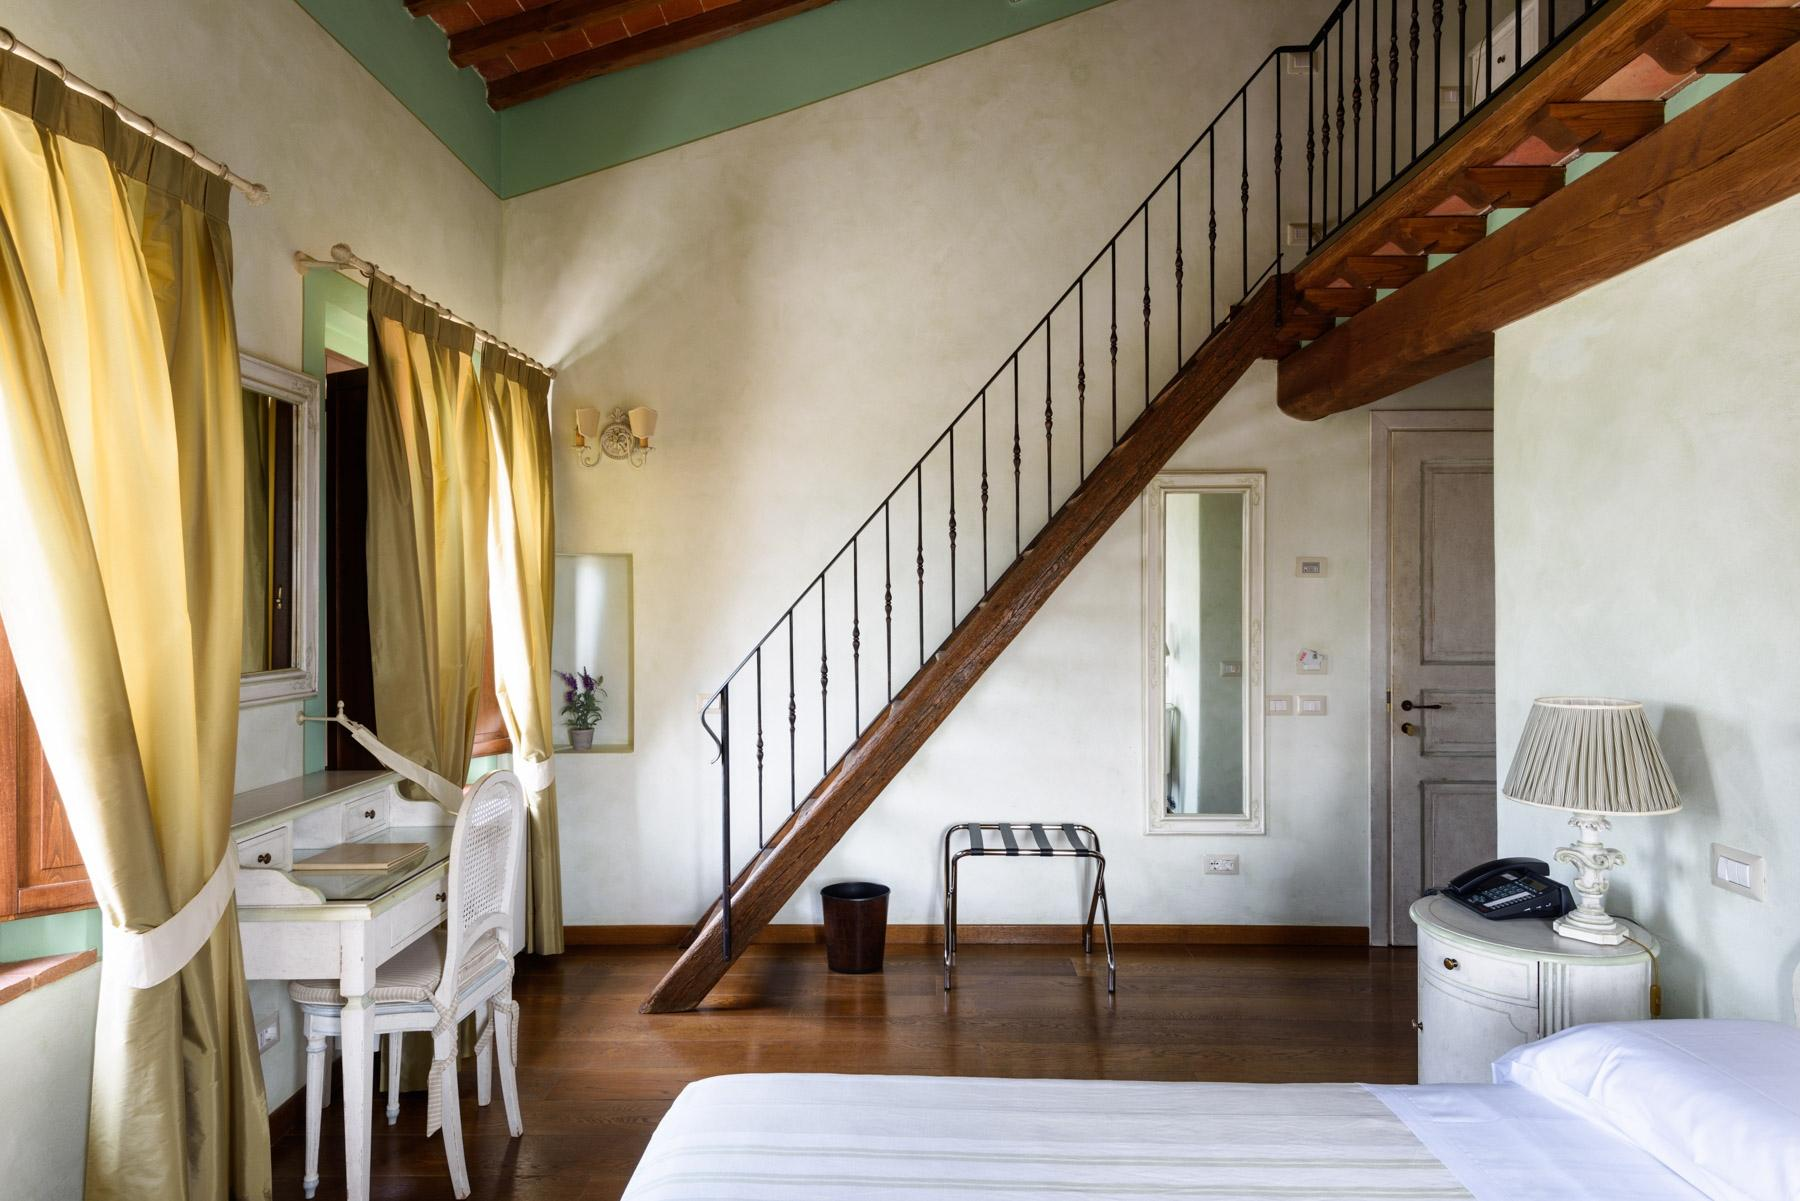 Country hotel with adjacent private villa near Siena - 13